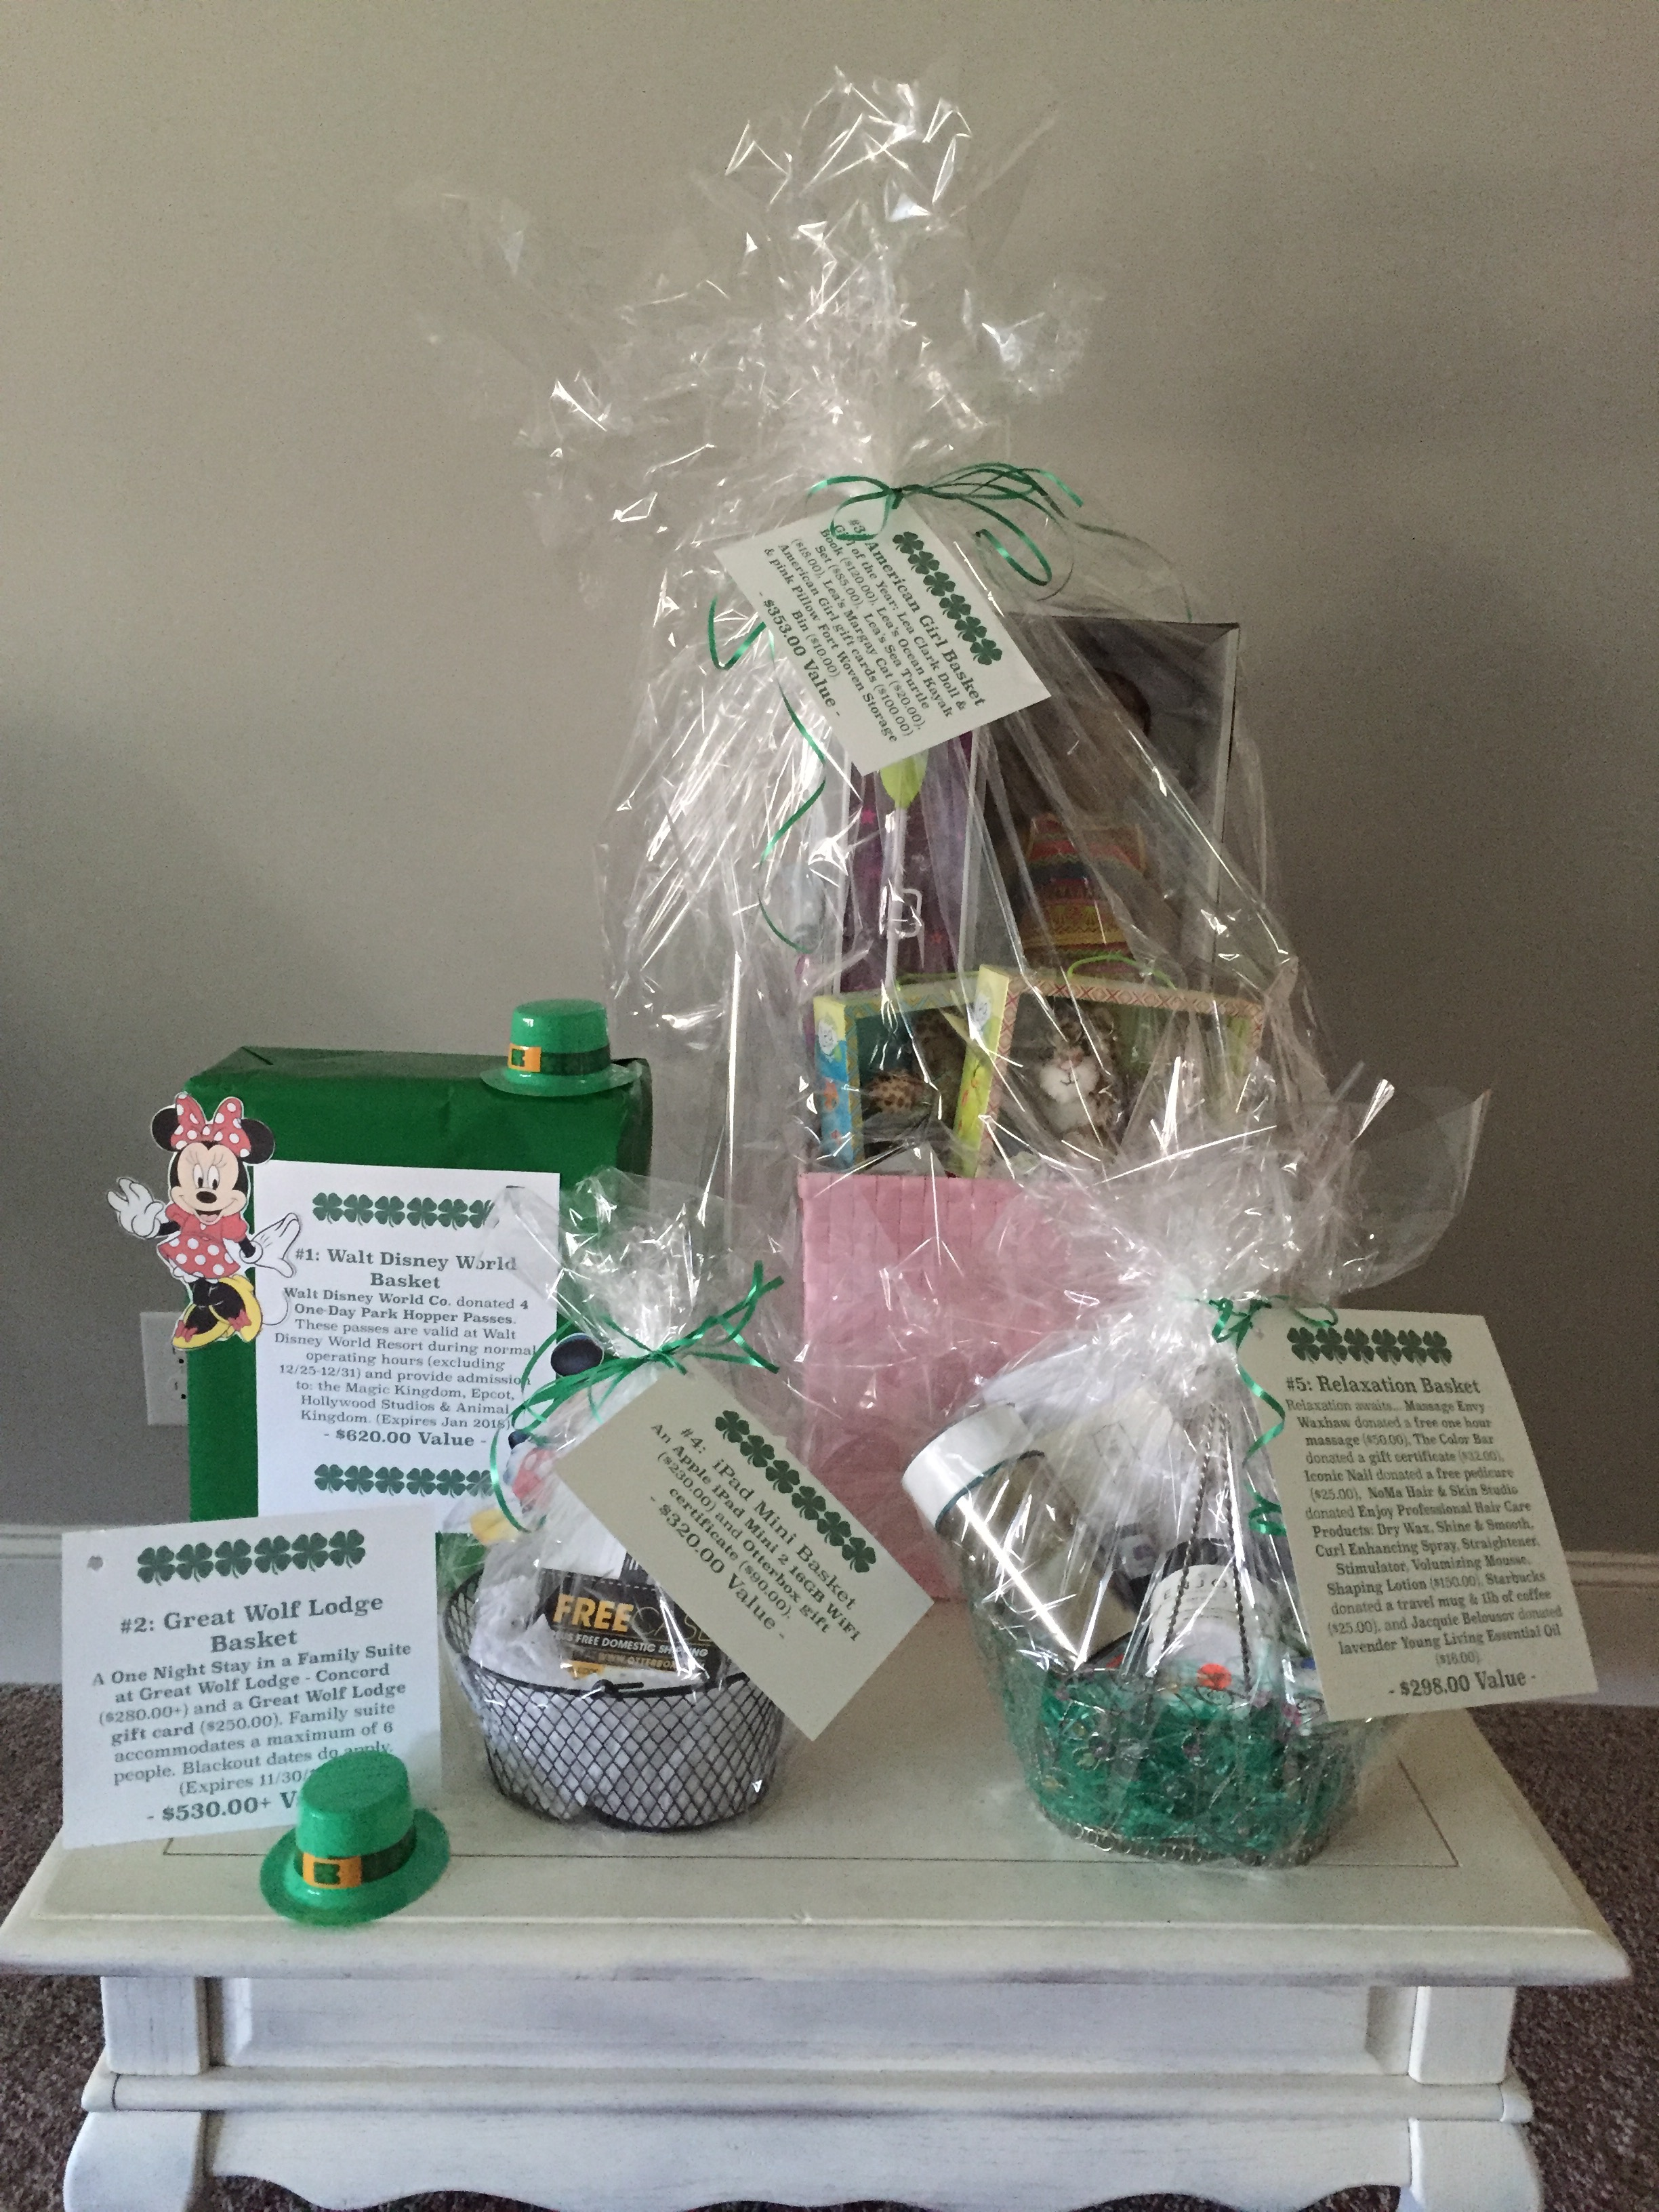 Our St. Pattyu0027s Baskets are here! & Gift Baskets Delivered To Disney World Resorts - BestHolidayDeals.CO